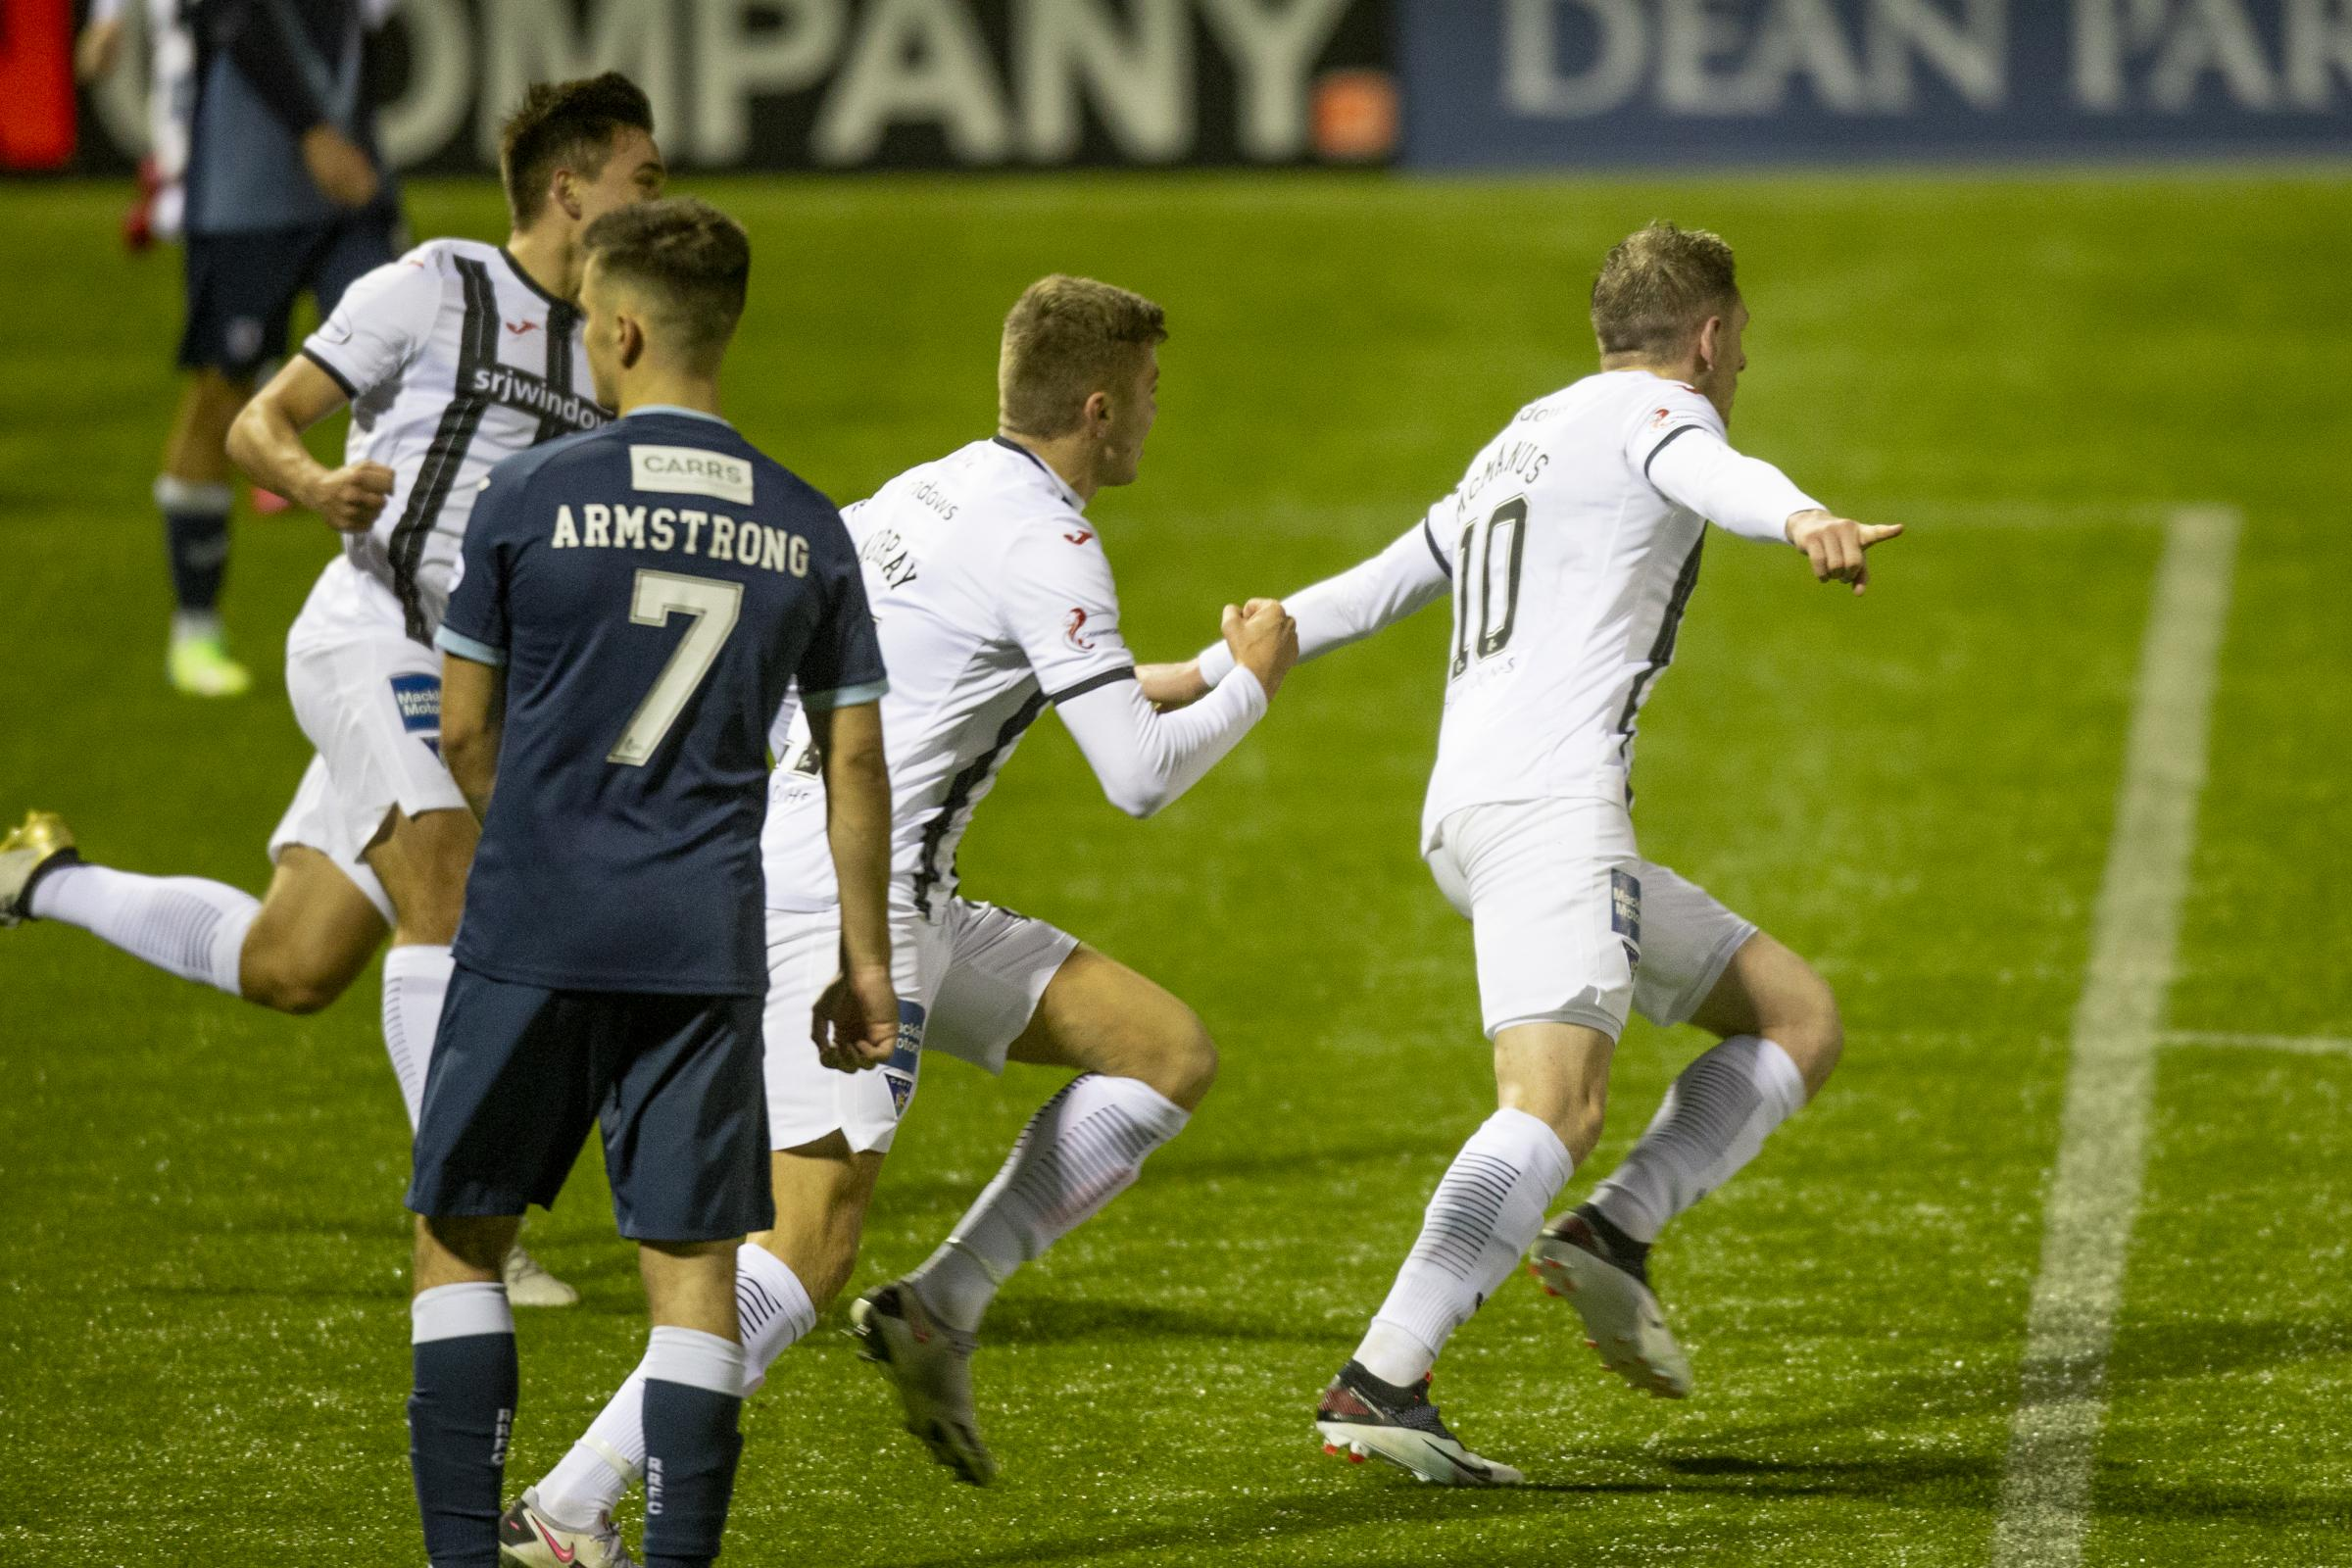 Dunfermline defeat Raith Rovers in SPFL Championship